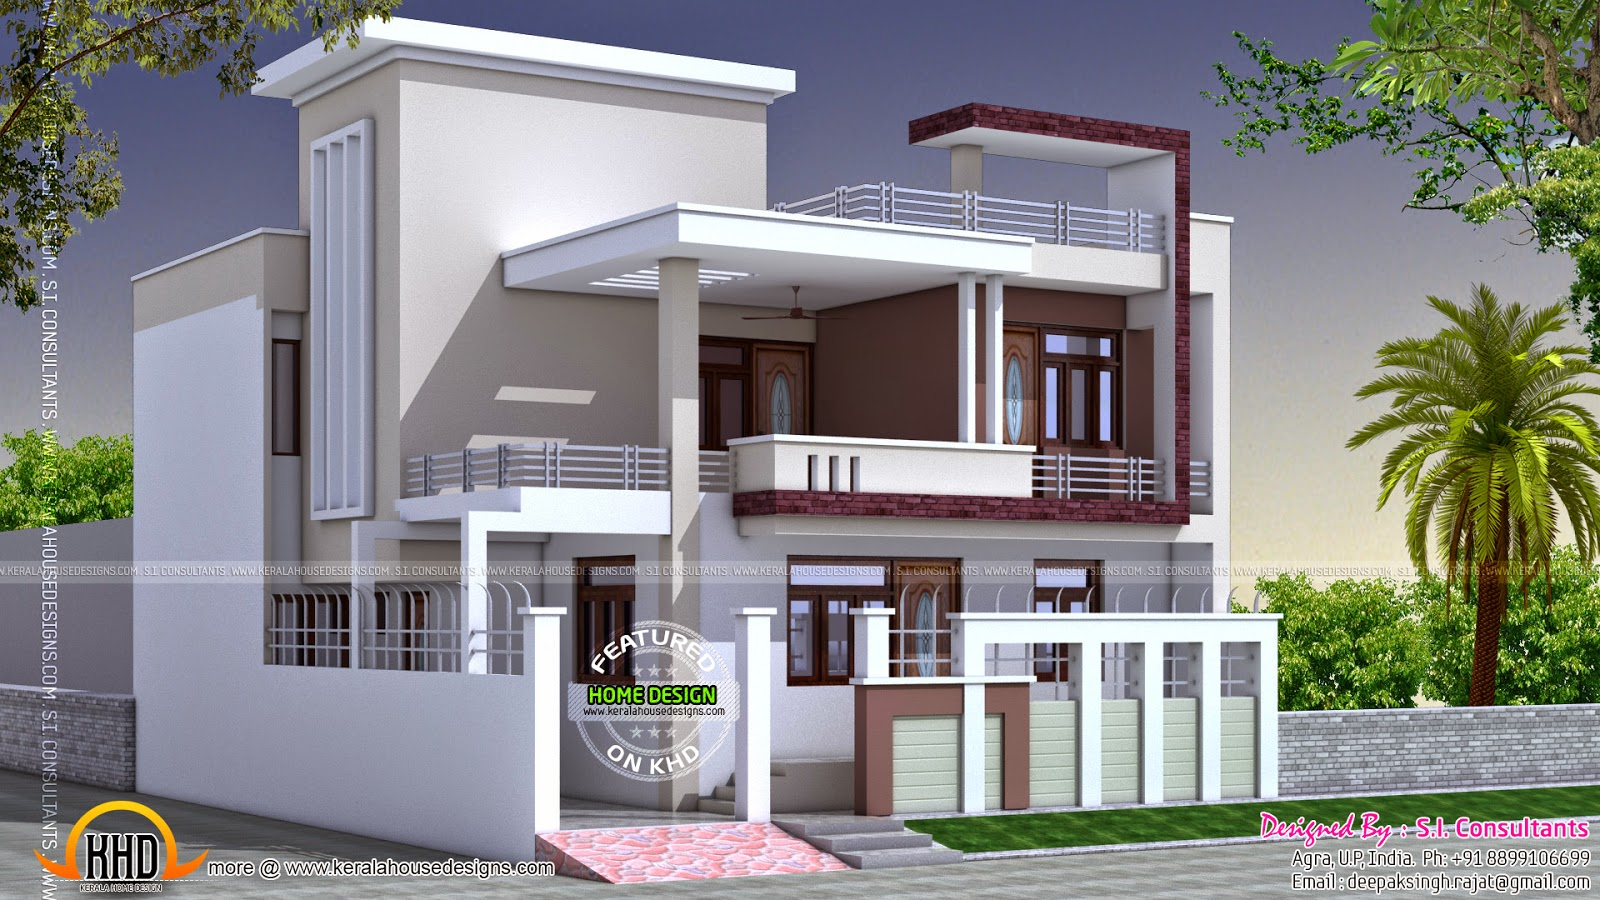 Home Design Plans For Indian House waternomicsus